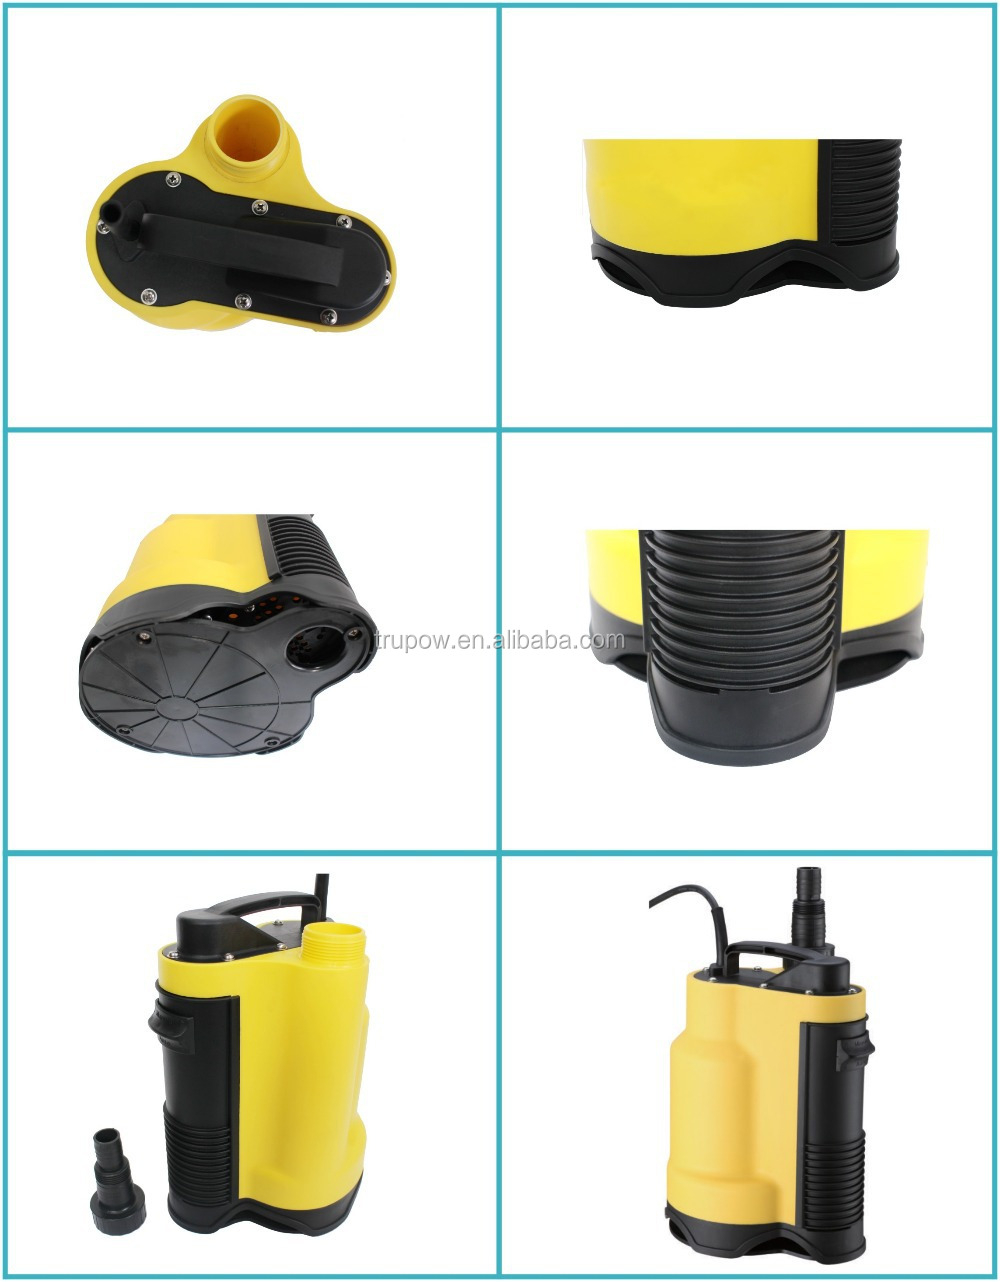 Exclusive Universal Design Built-in float switch submersible pump dirty water price